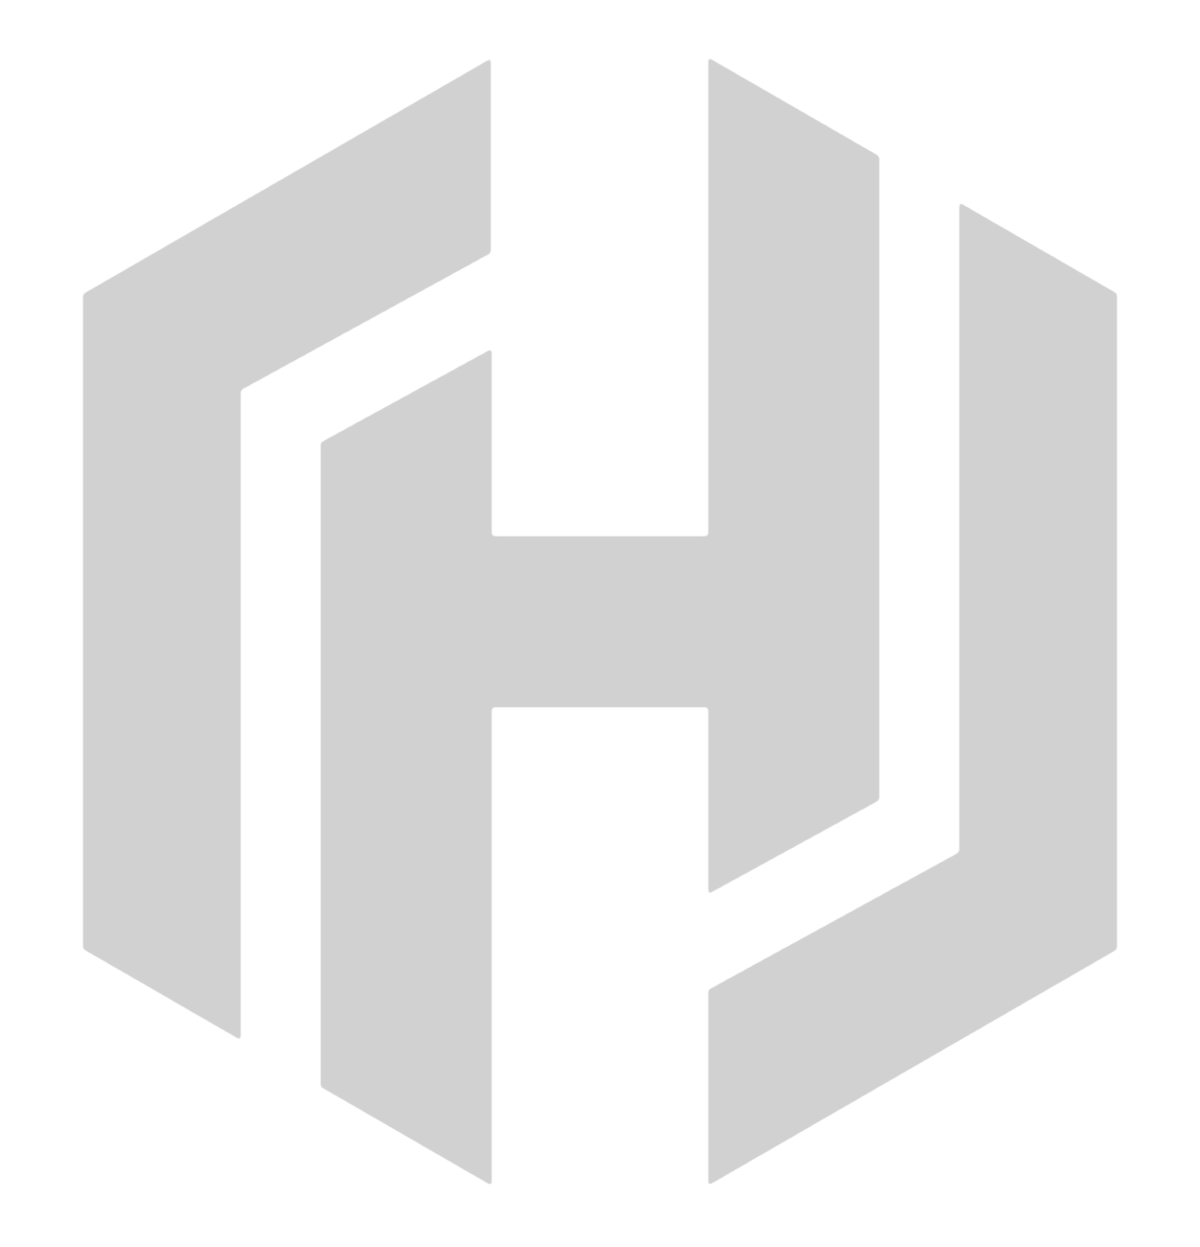 HashiCorp_Logo_no_text.png